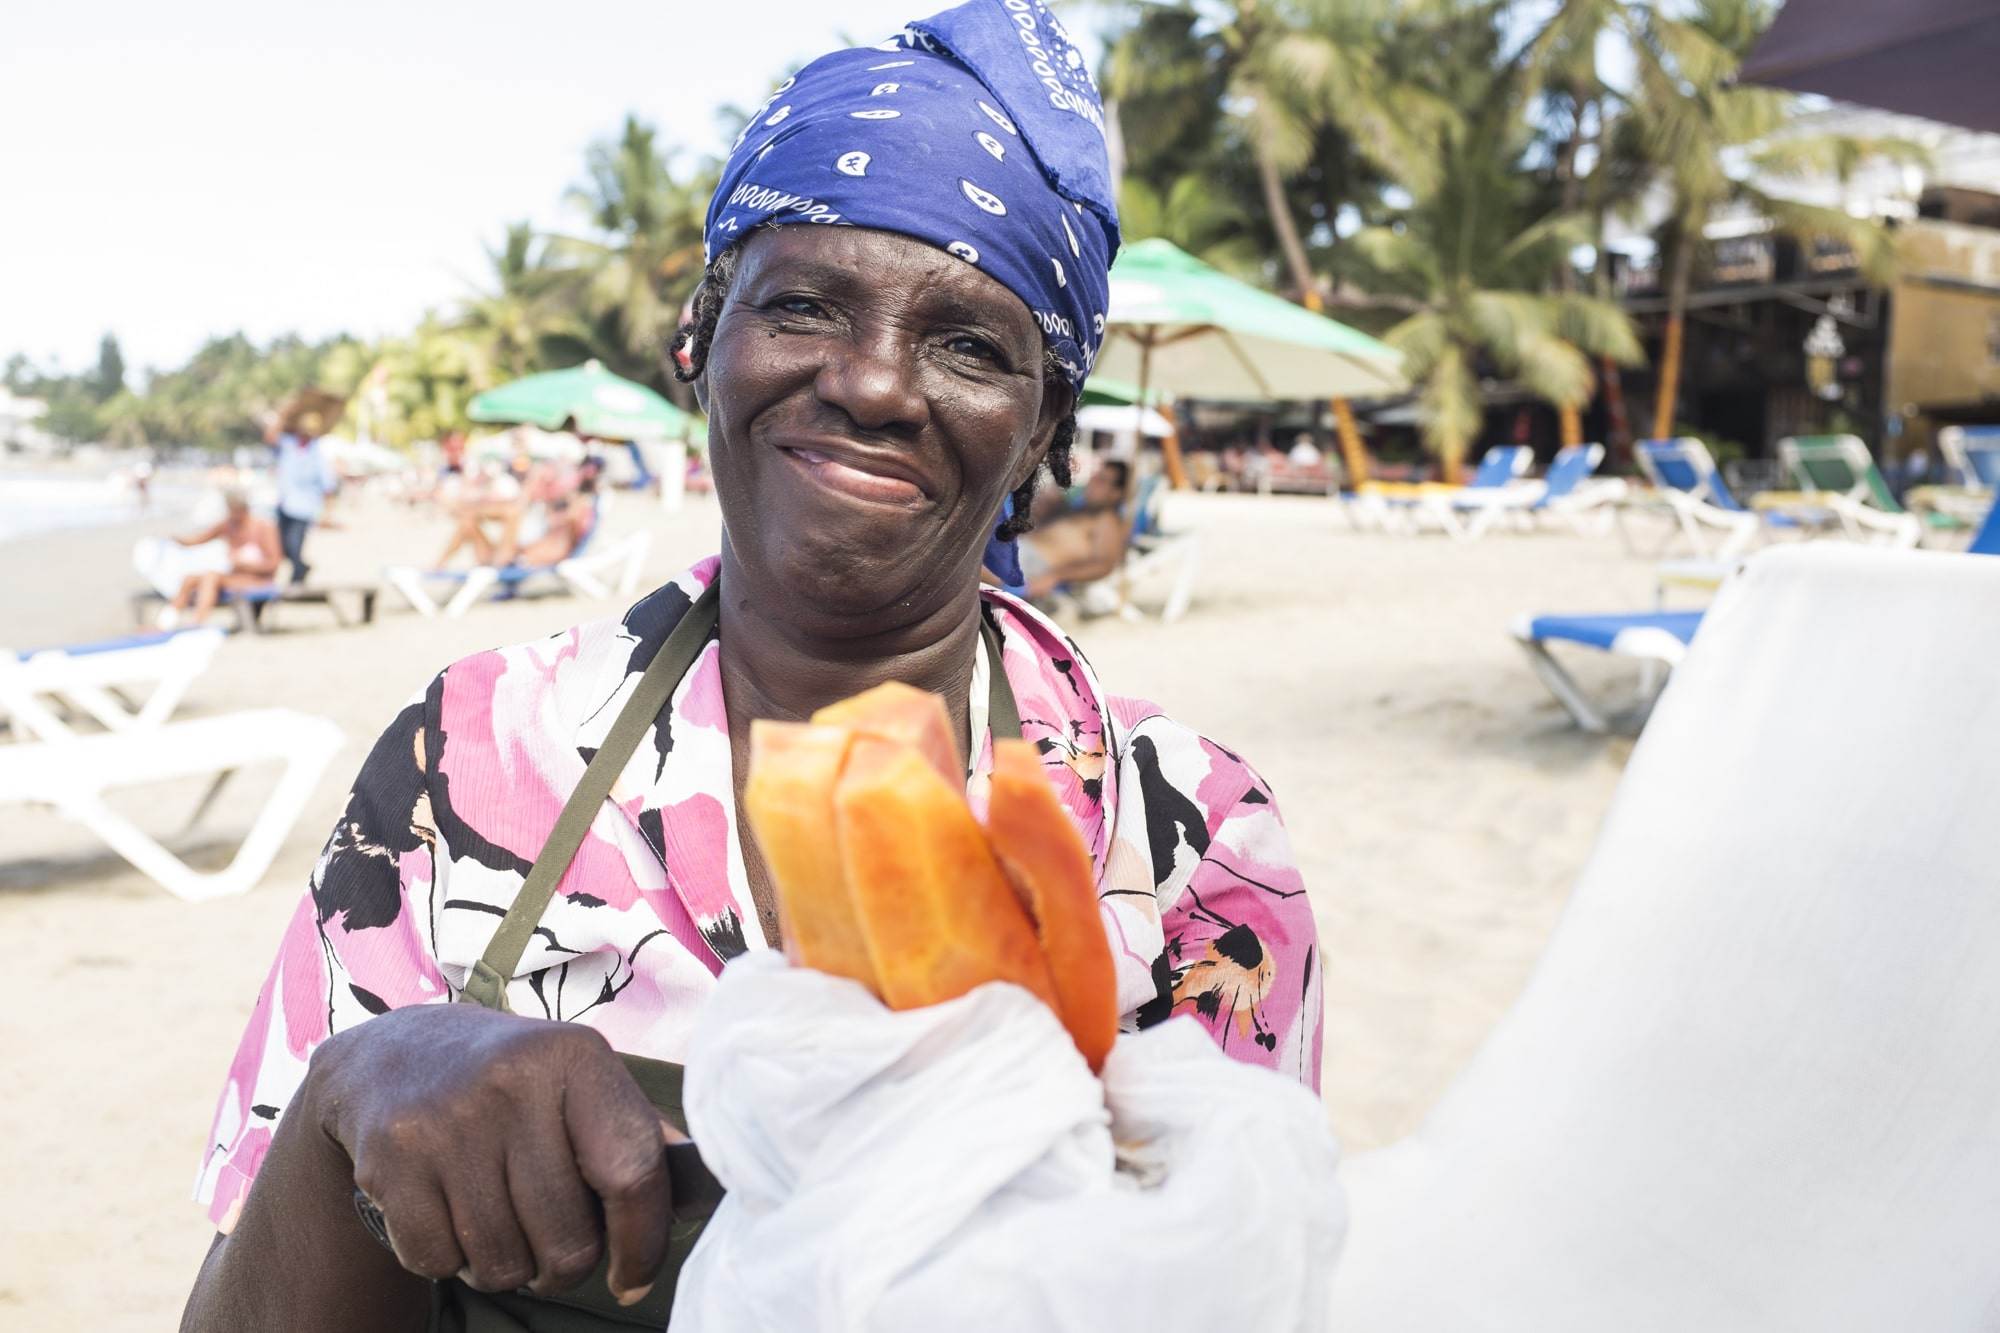 Cabarete Icon: Ana the fruit lady